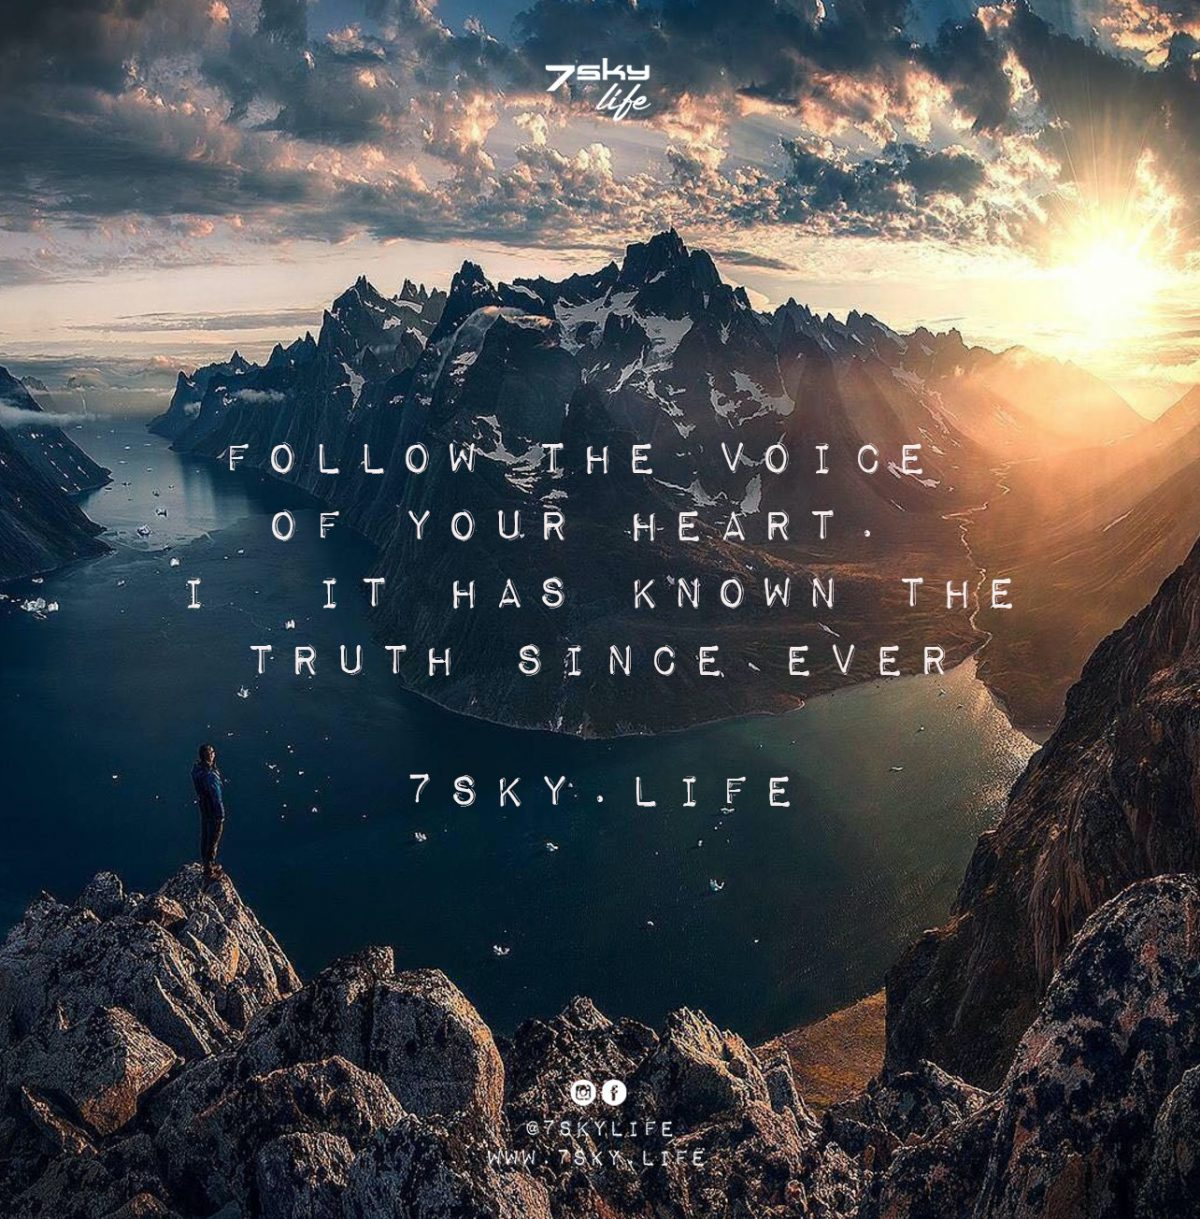 Follow The Voice of your Heart.